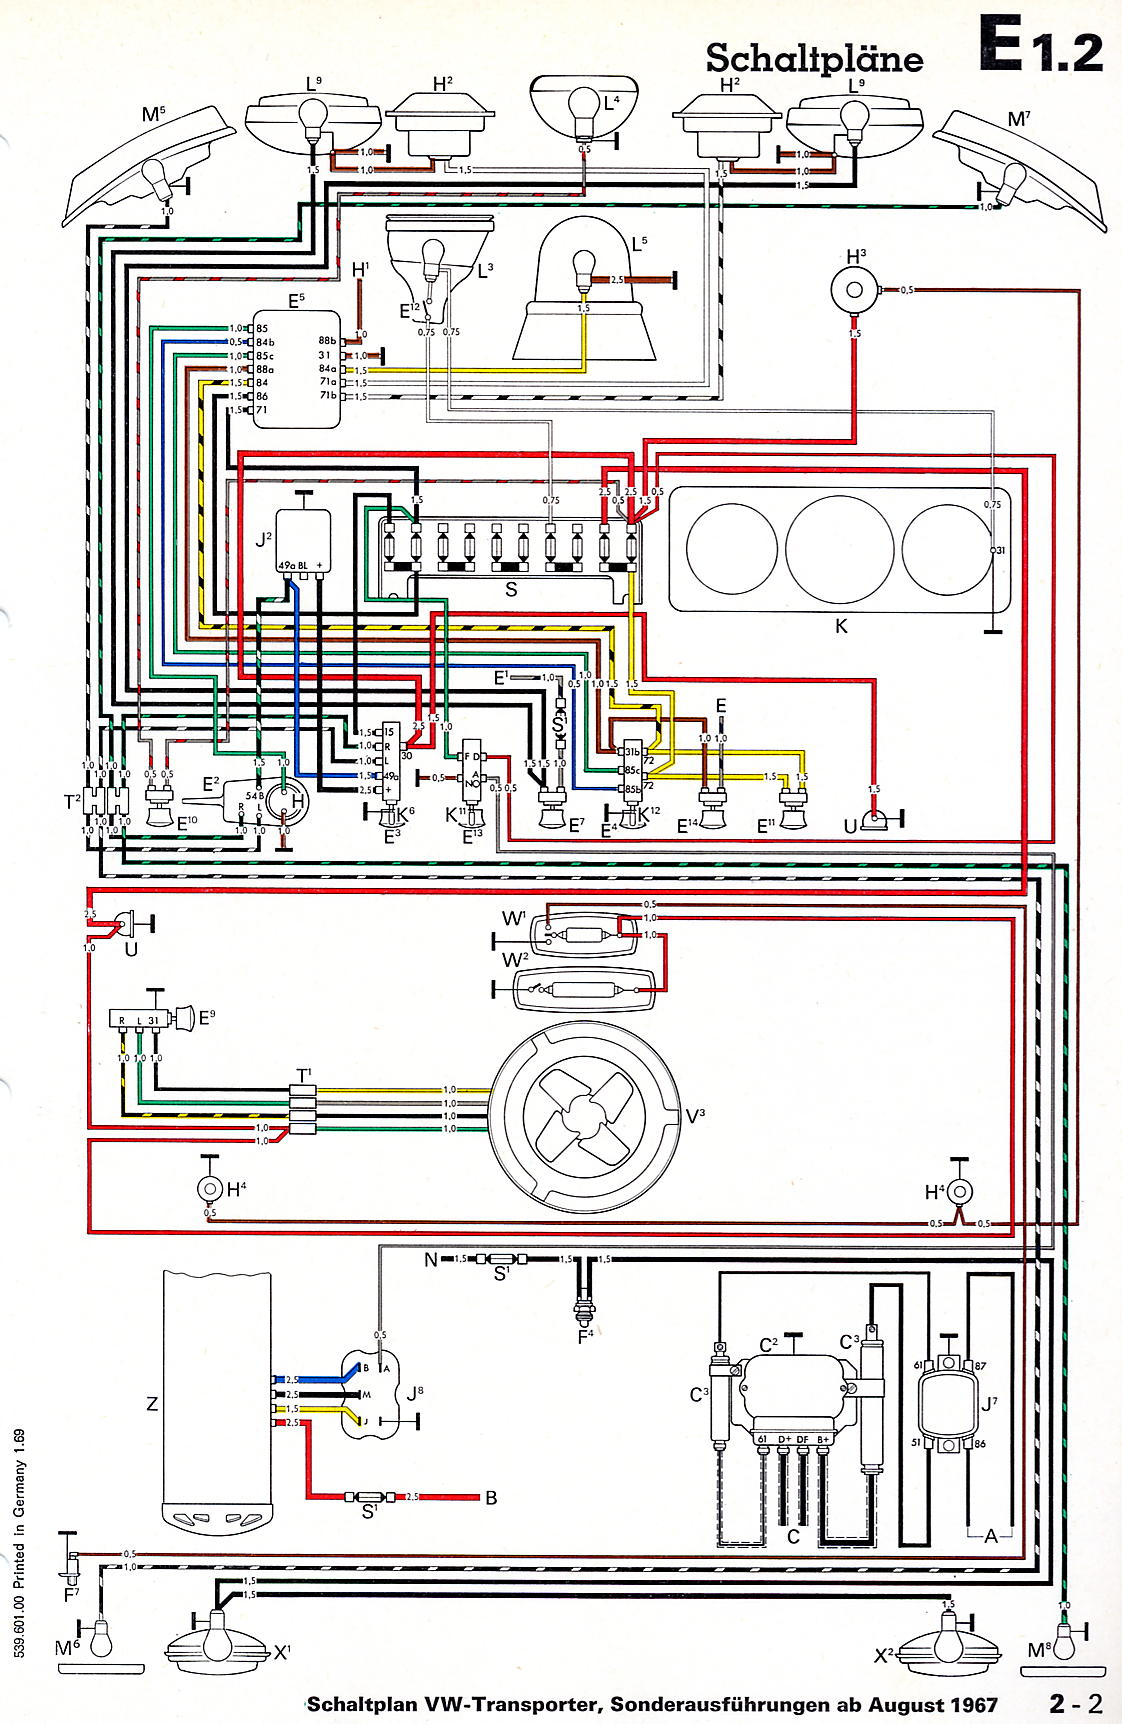 1972 Vw Beetle Wiring Diagram - Enthusiast Wiring Diagrams •  Volkswagen Wiring Schematic on engine schematics, plumbing schematics, transmission schematics, transformer schematics, amplifier schematics, wire schematics, ford diagrams schematics, circuit schematics, electronics schematics, ignition schematics, generator schematics, piping schematics, ecu schematics, ductwork schematics, motor schematics, computer schematics, electrical schematics, tube amp schematics, engineering schematics, design schematics,